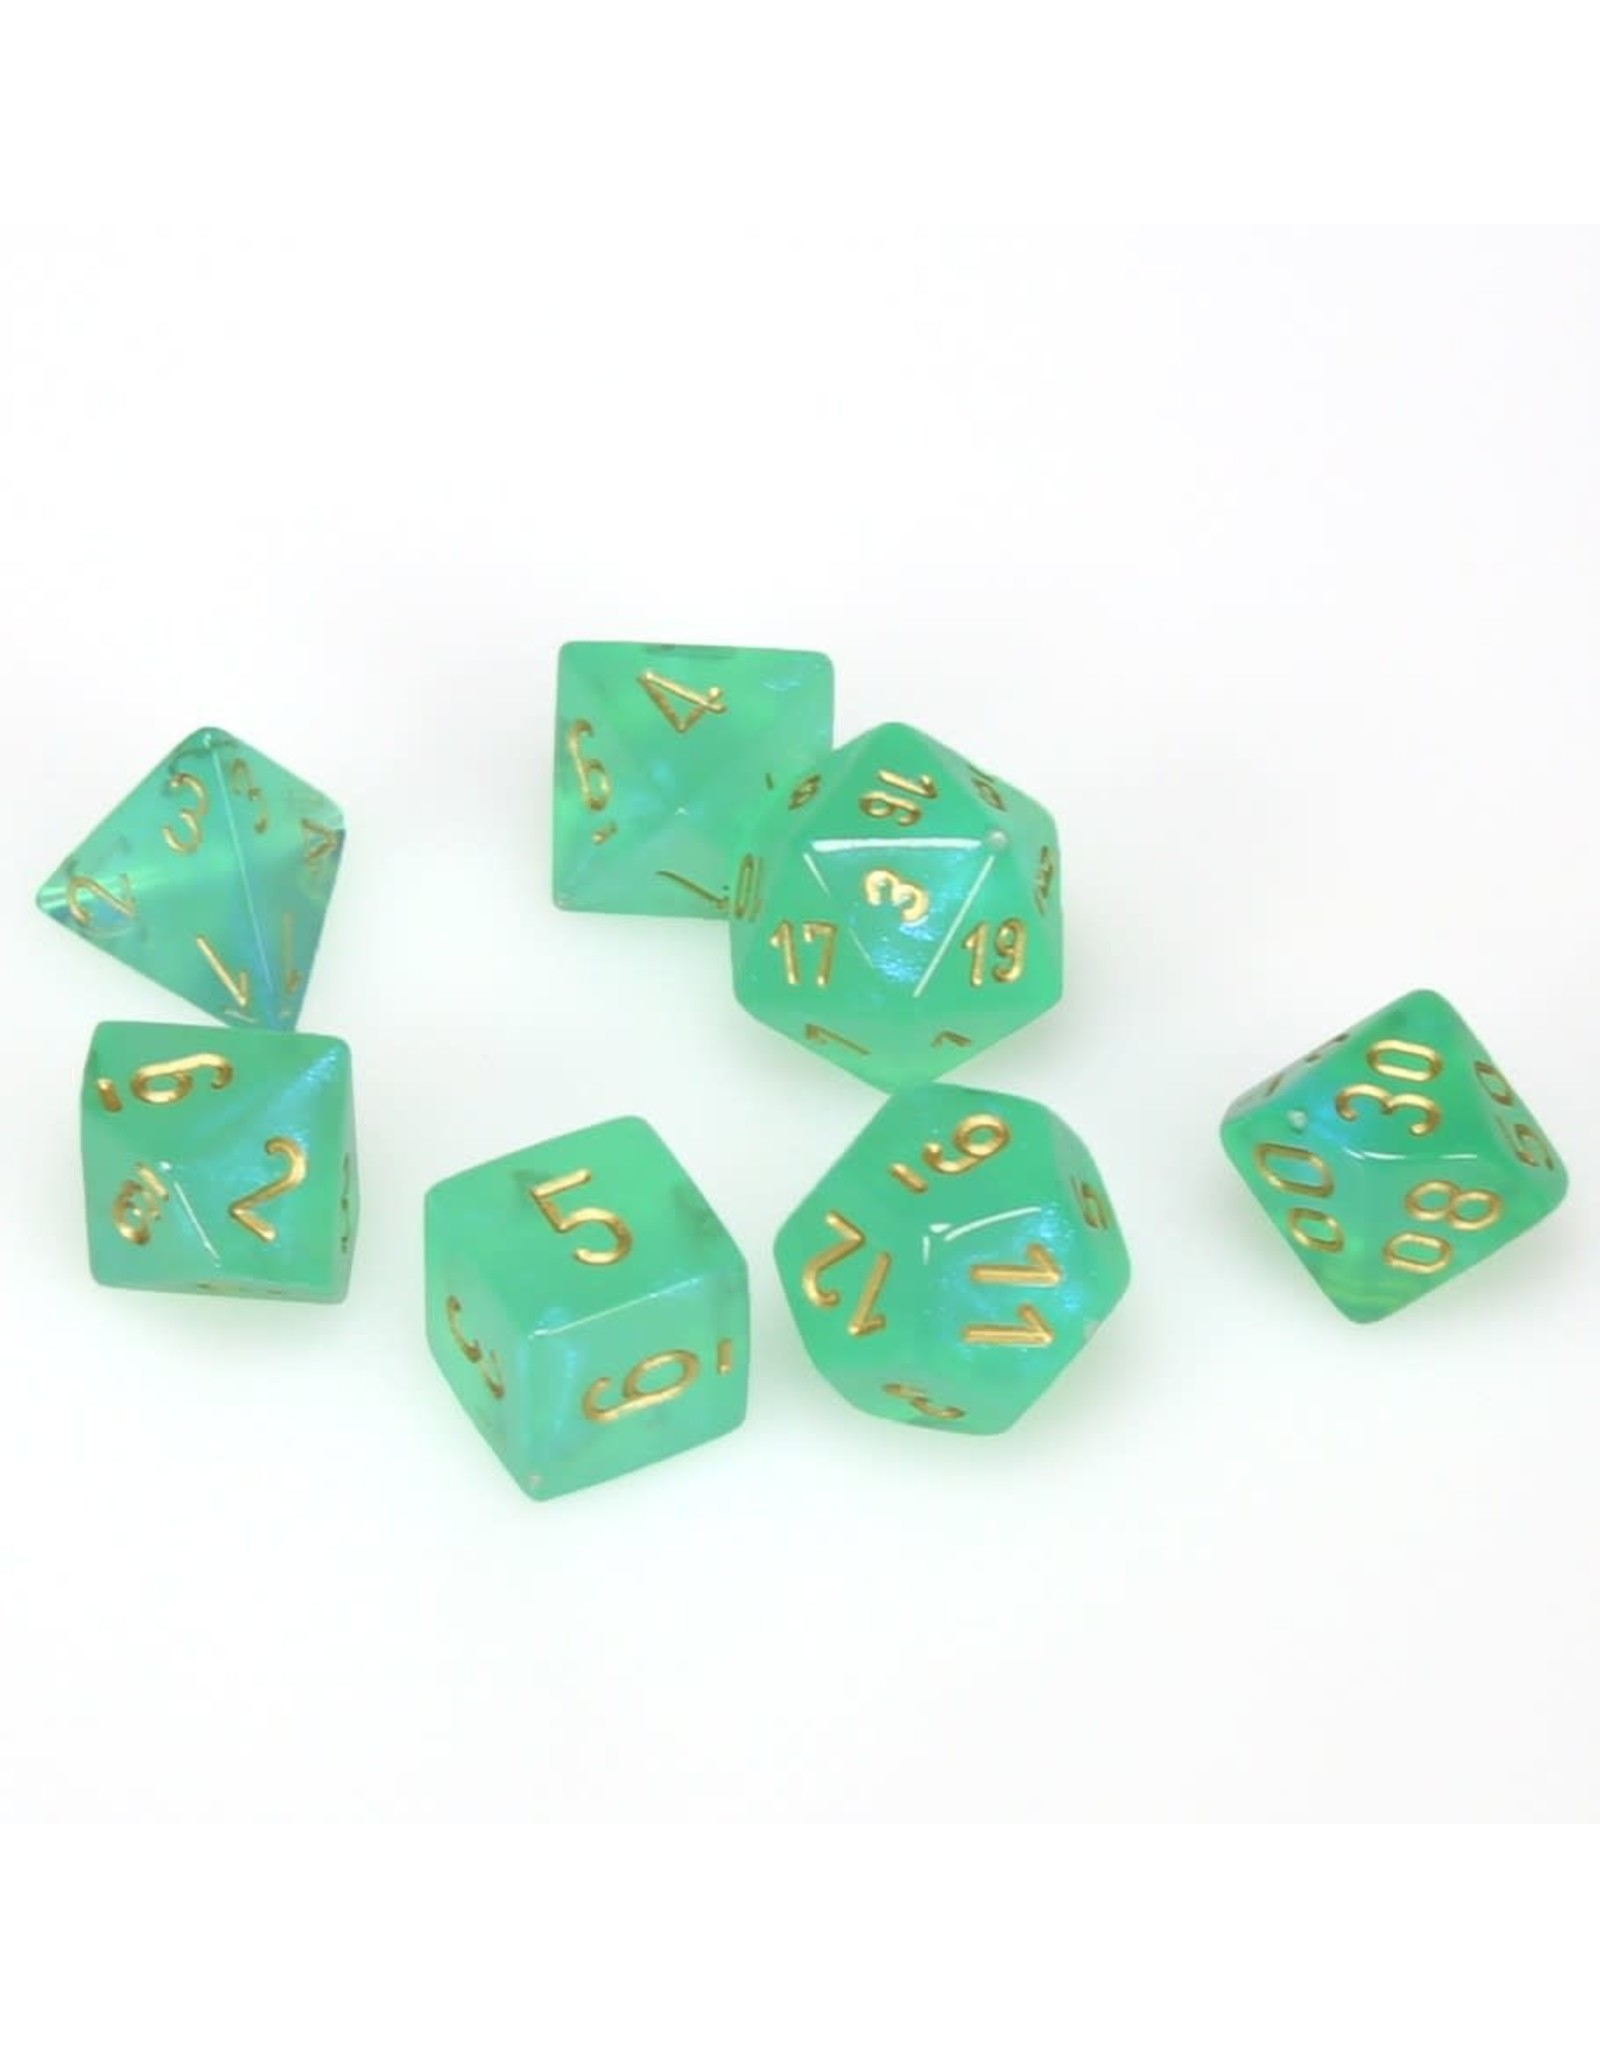 Chessex Polyhedral 7 Dice Set Borealis Light Green w/Gold CHX27425